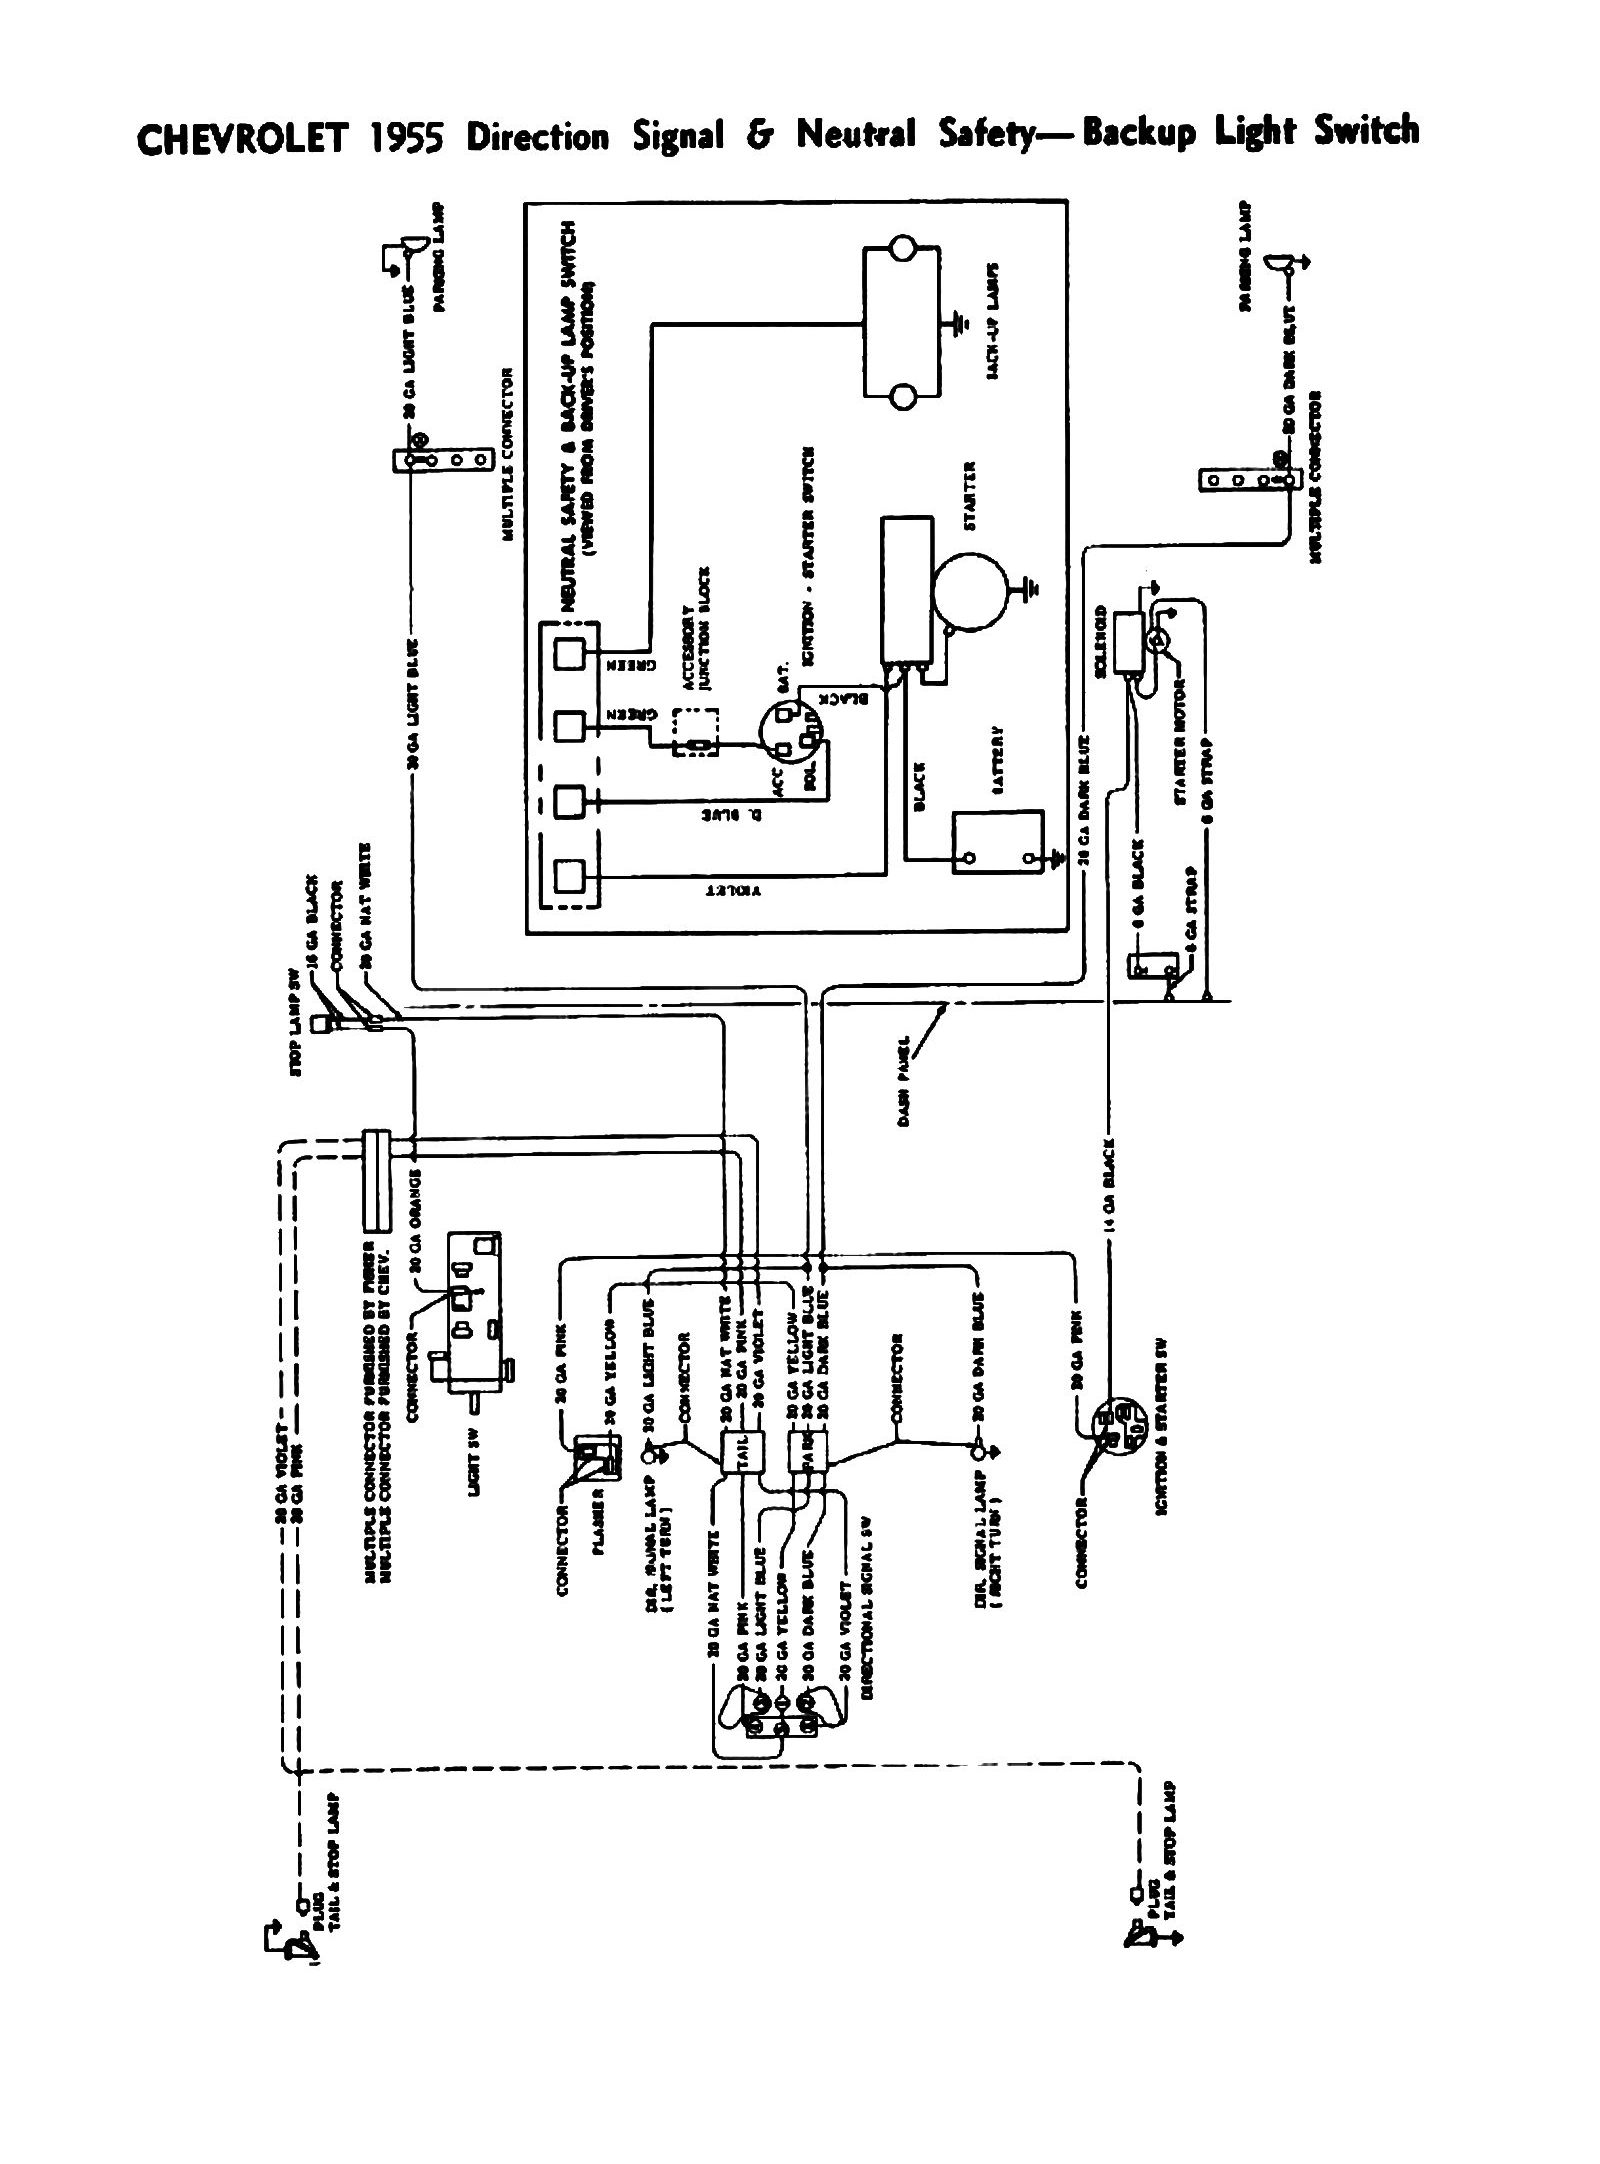 55signal chevy wiring diagrams chevrolet ignition wiring diagram at fashall.co